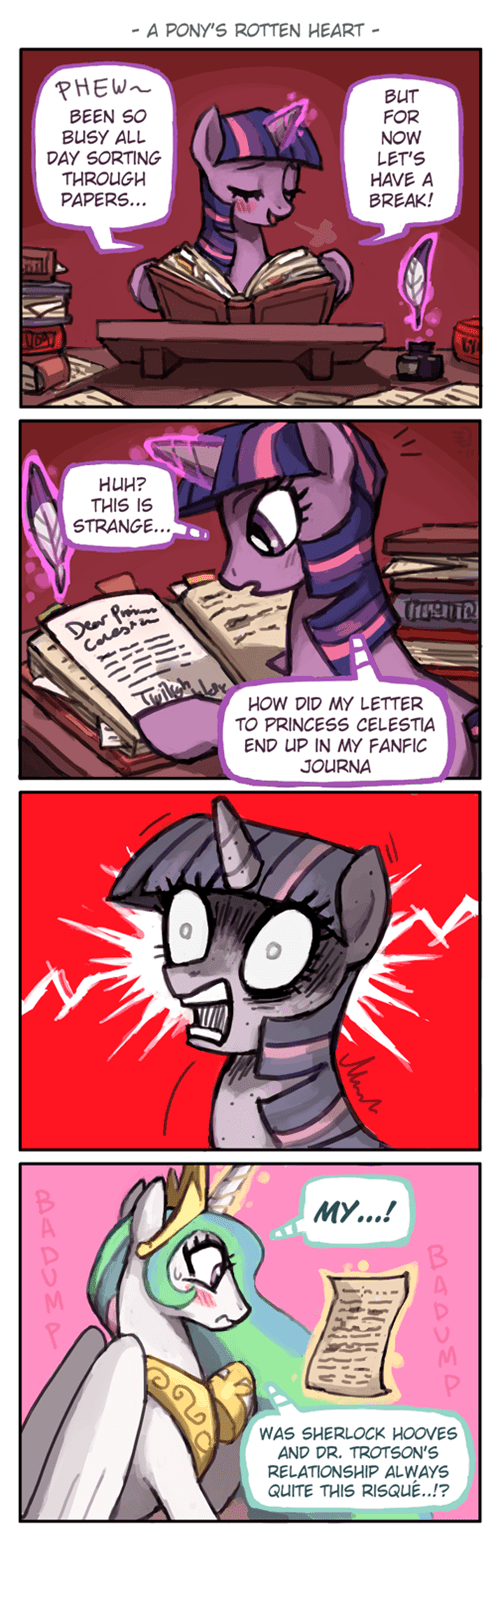 fanfic princess celestia twilight sparkle - 8330387456